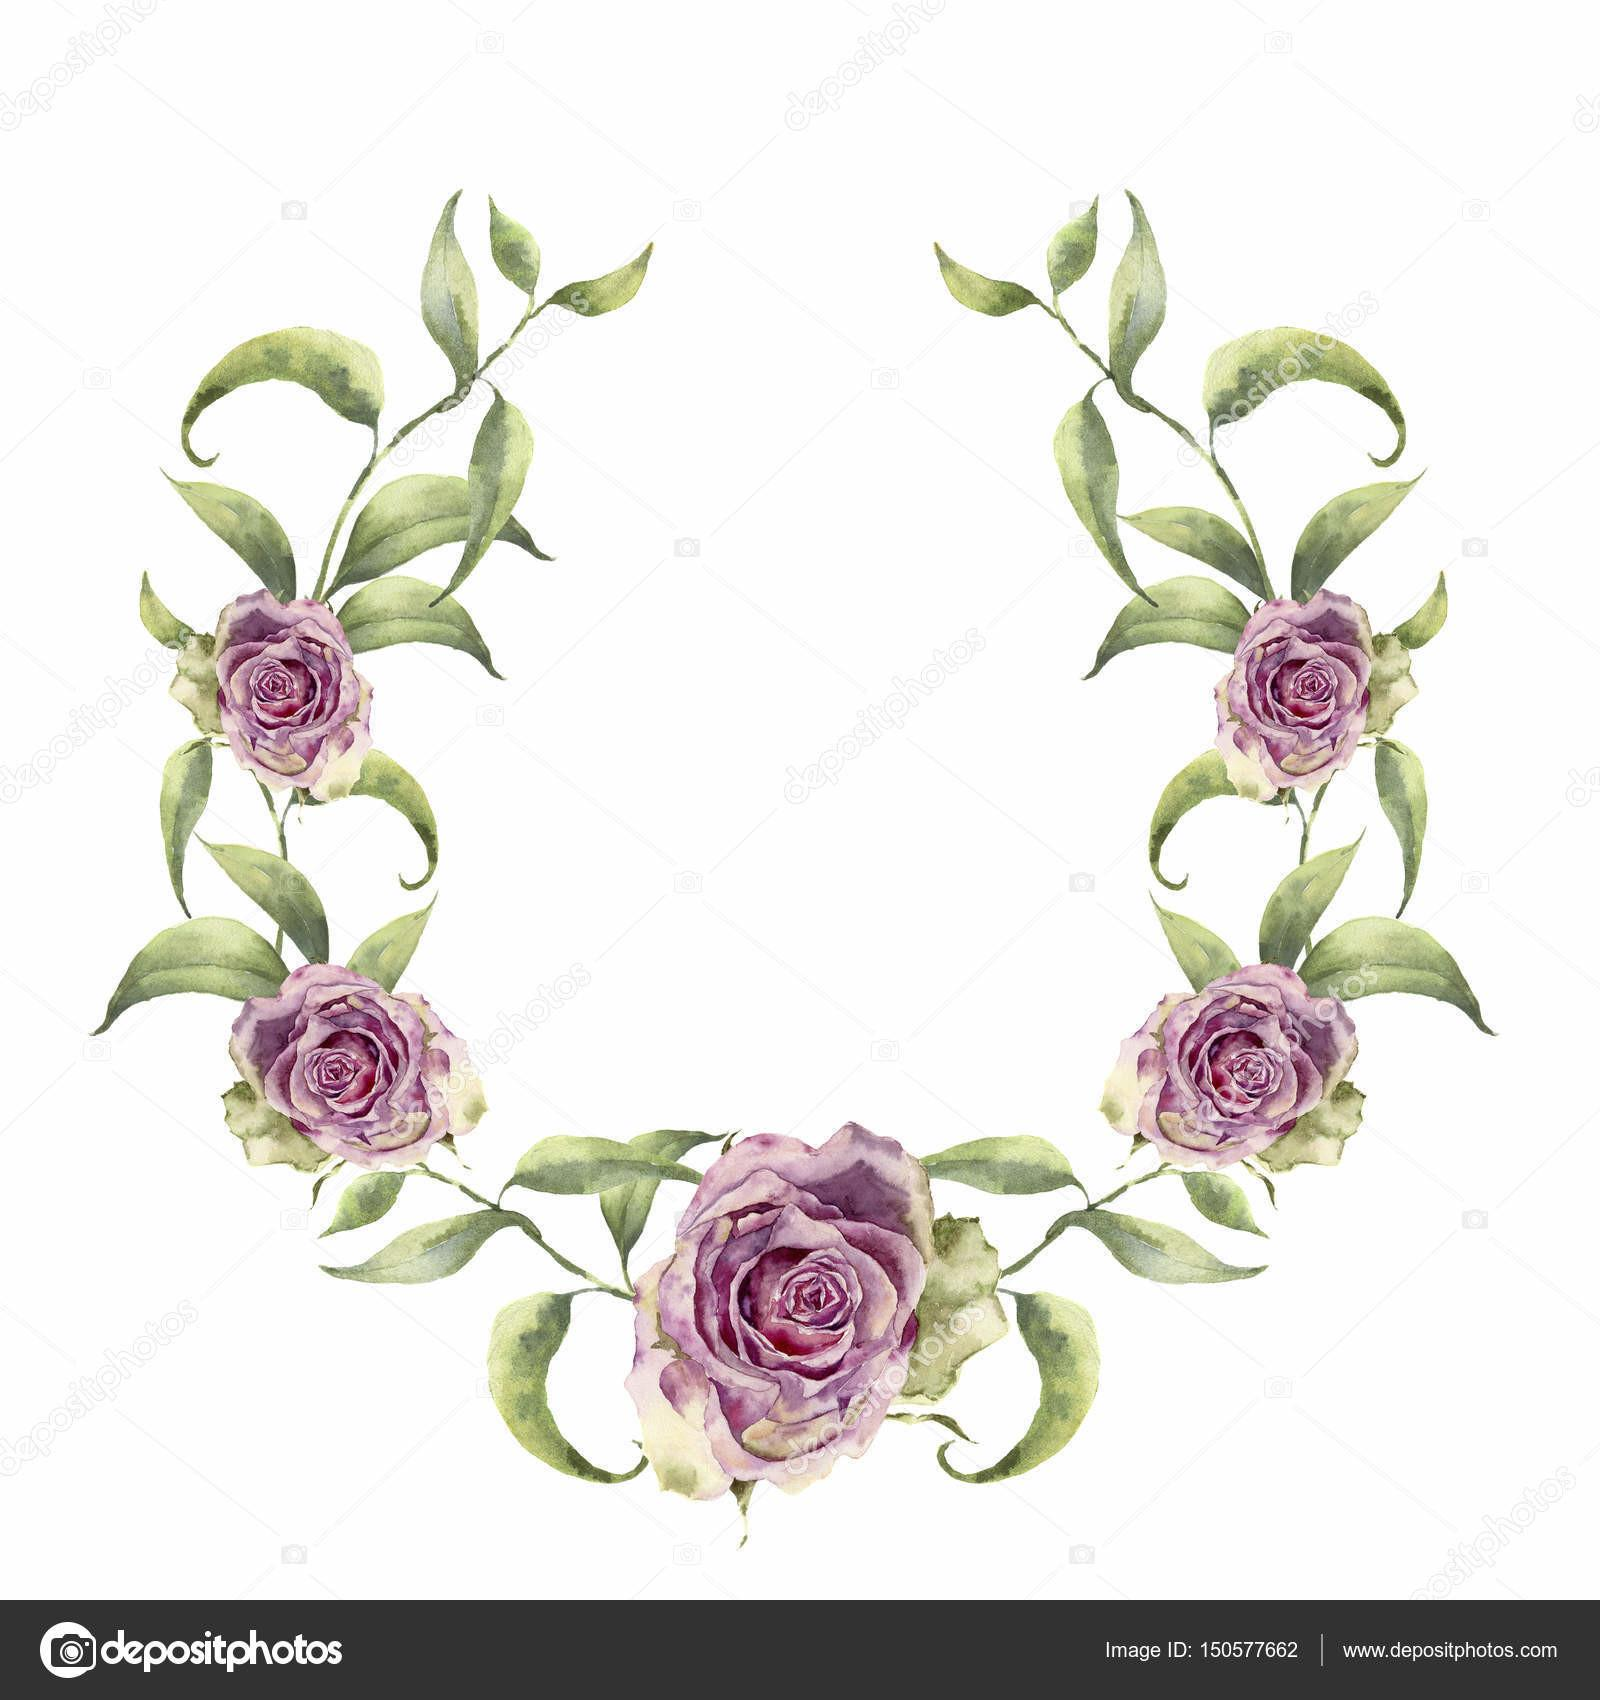 Watercolor Wreath Greenery Branch Roses Hand